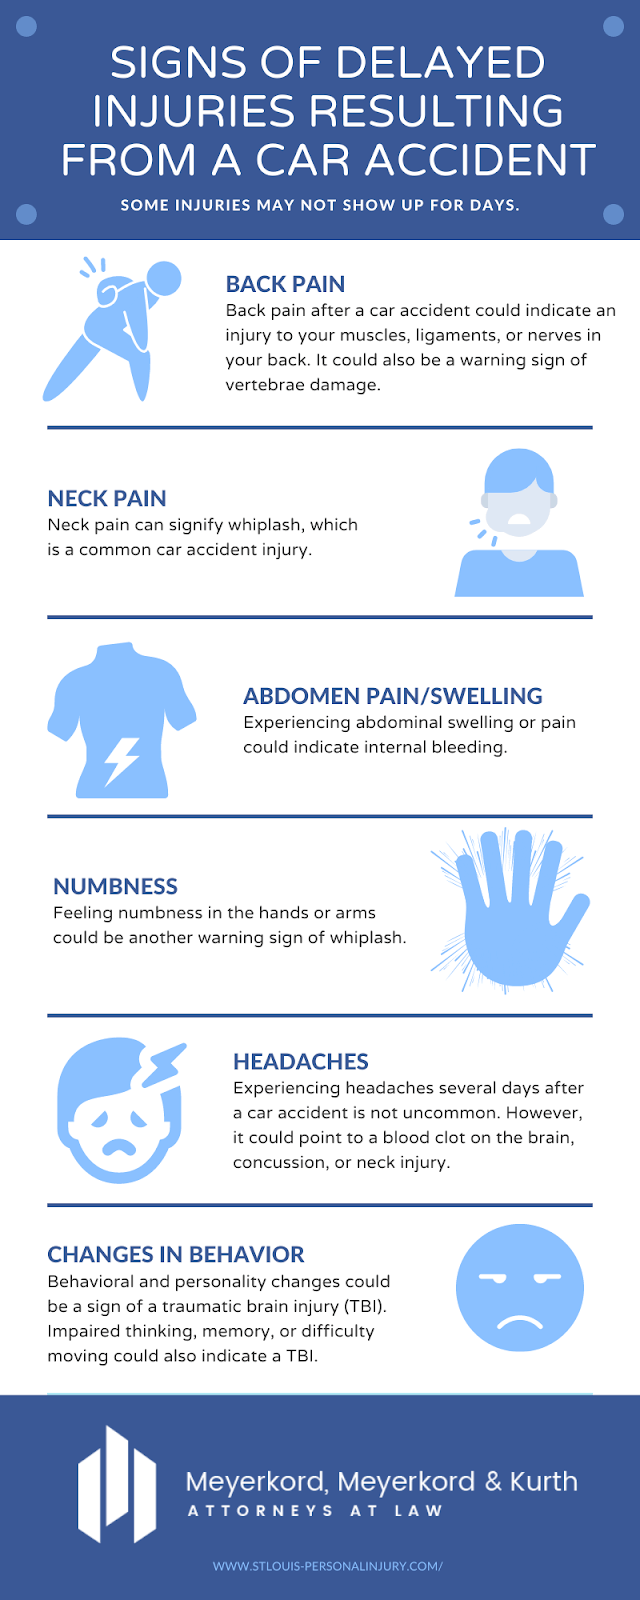 infographic of signs of delayed injuries resulting from a car accidents